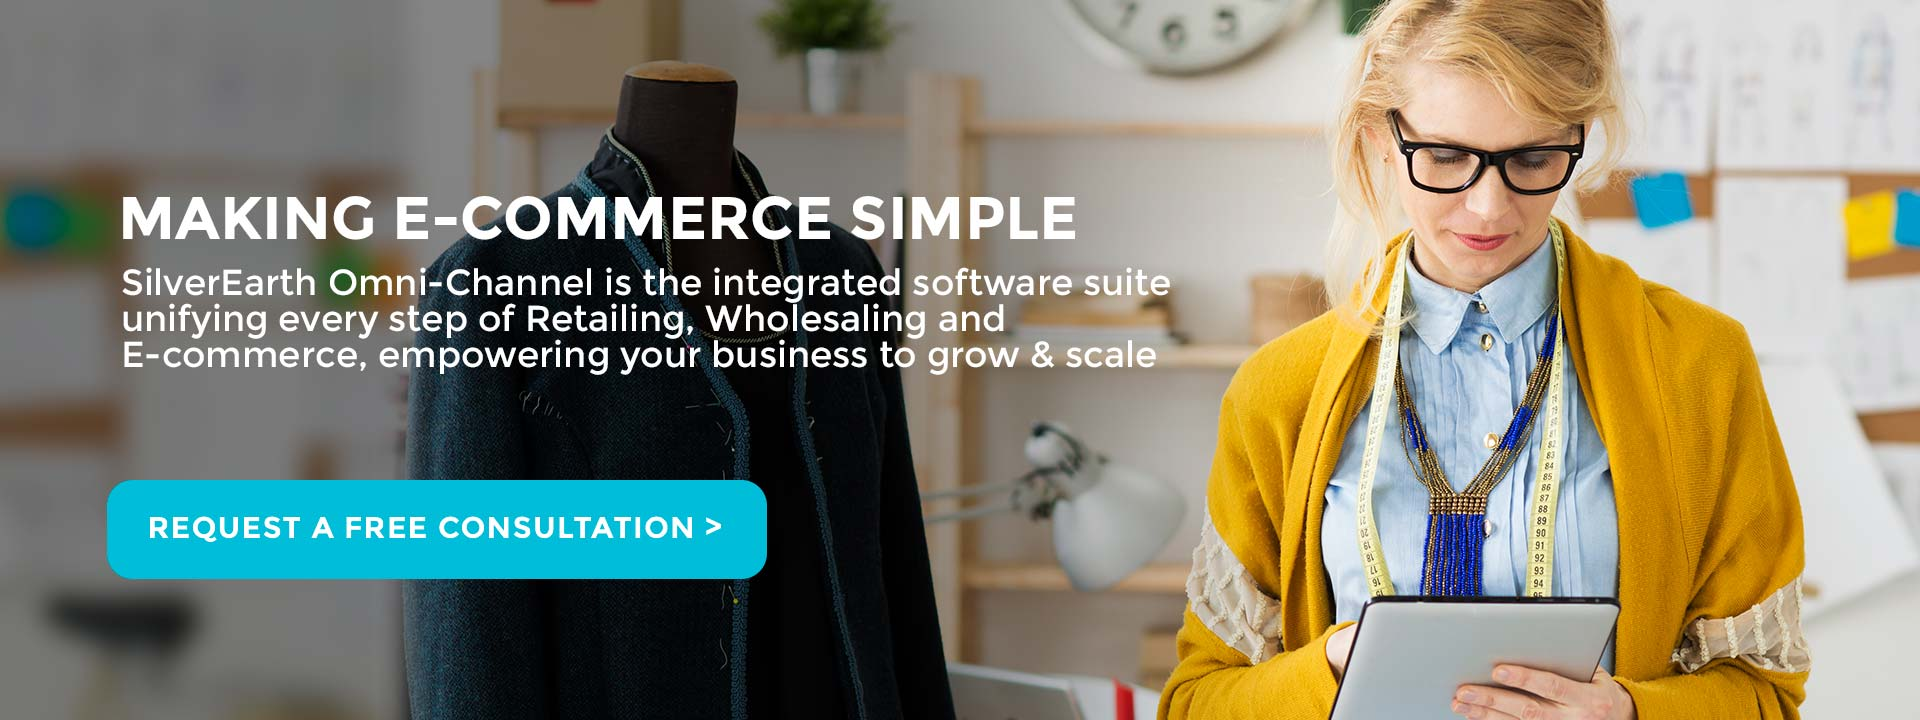 Omni Channel Commerce makes ecommerce simple